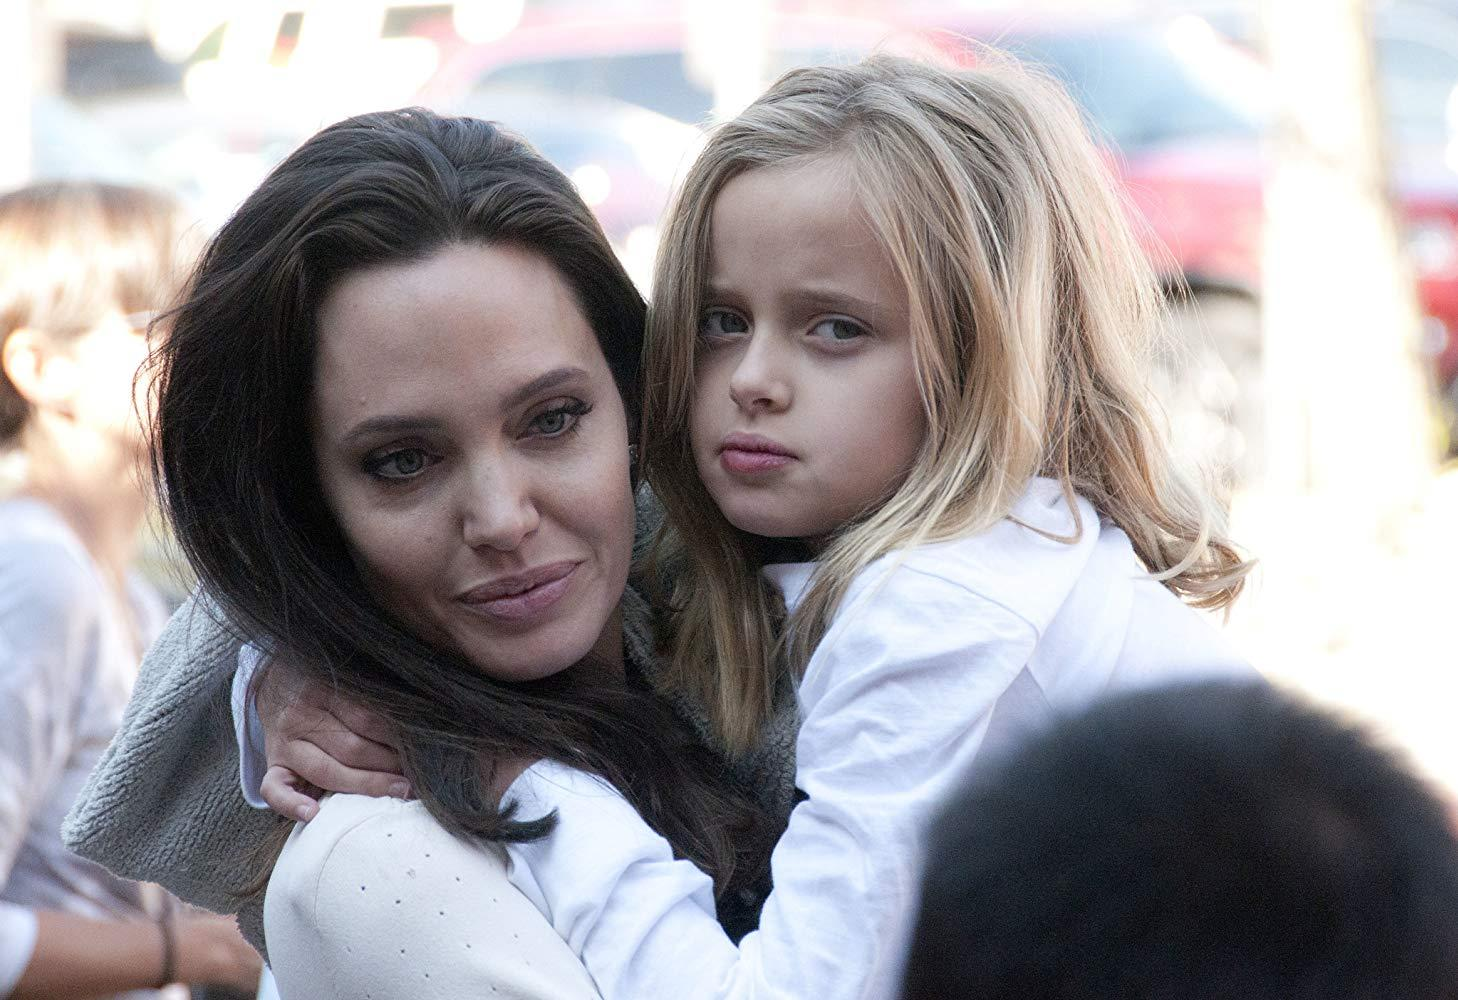 Brad Pitt - It Reportedly 'Warms His Heart' That Daughter Vivienne Resembles Angelina Jolie So Much - Here's Why!